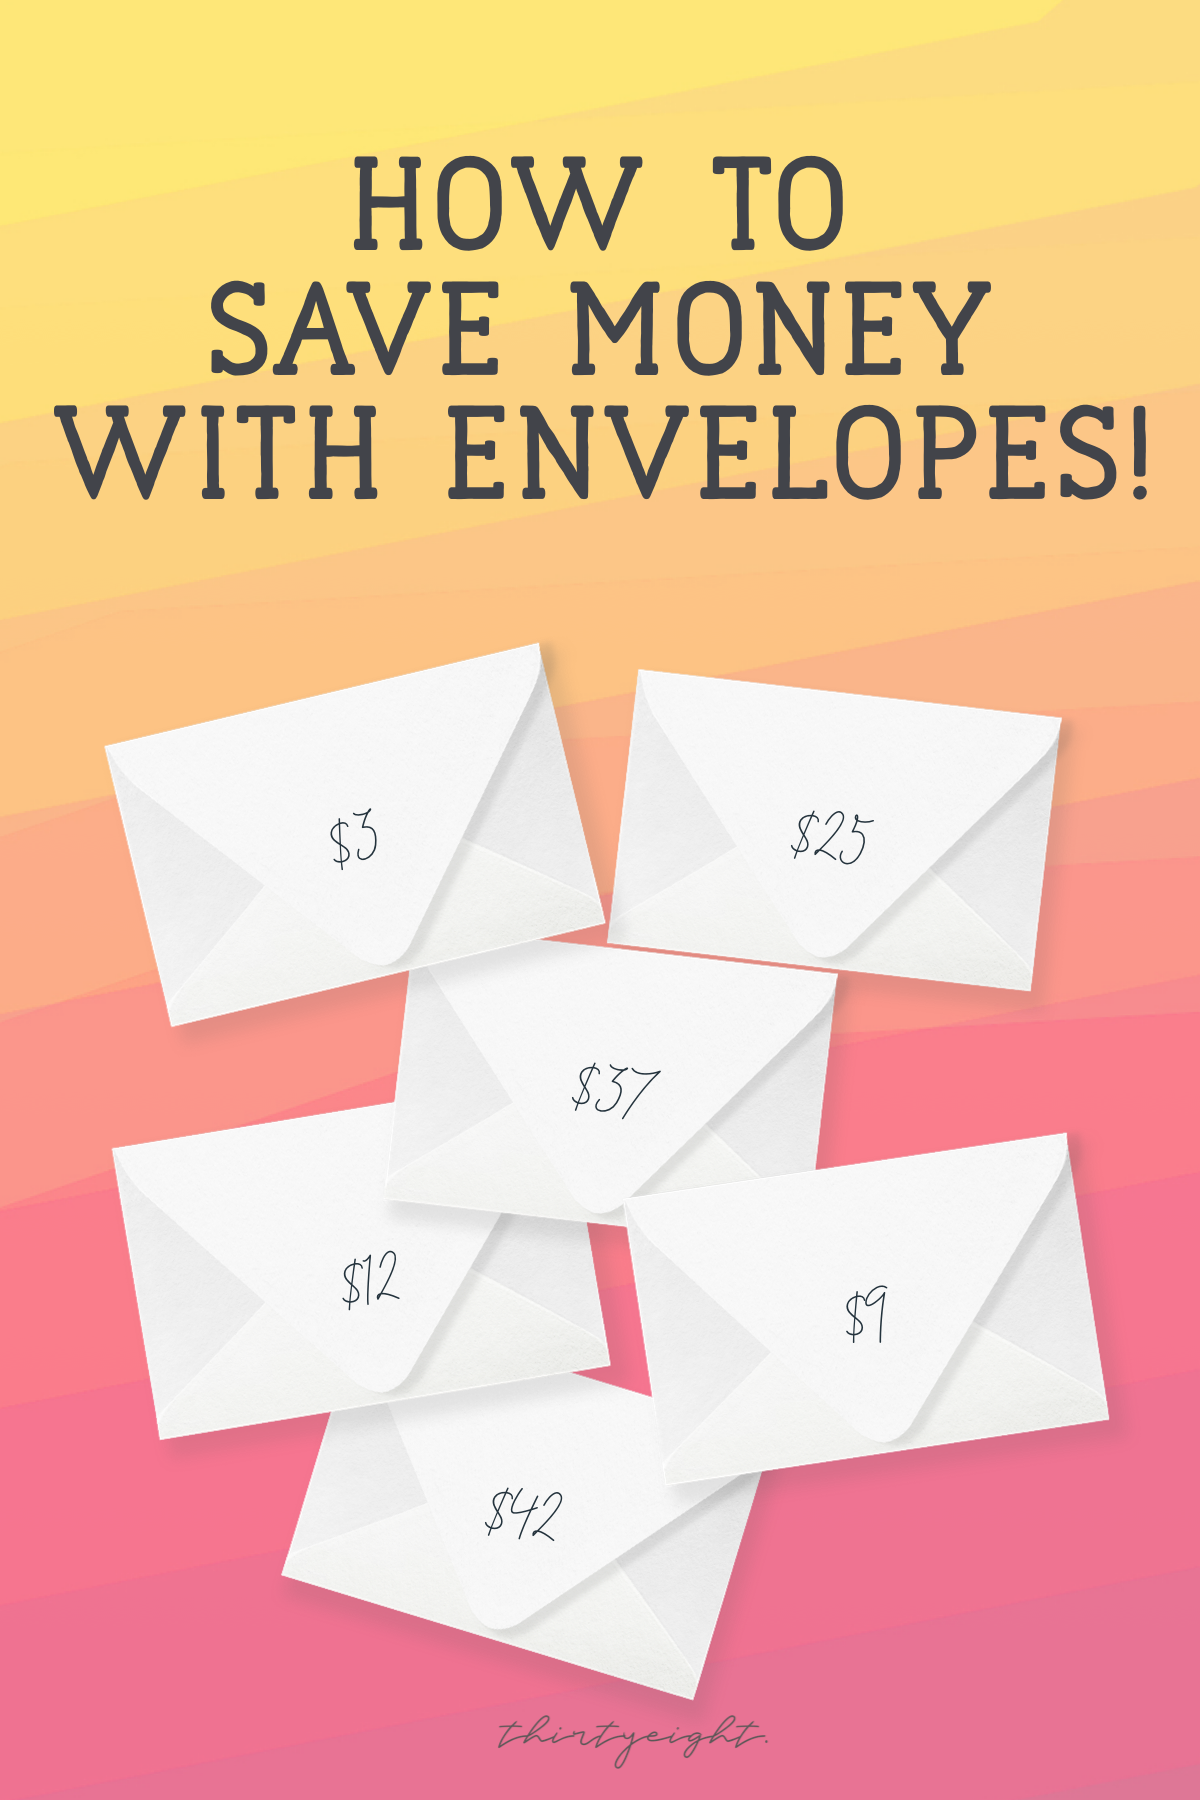 Save Money with Envelopes!